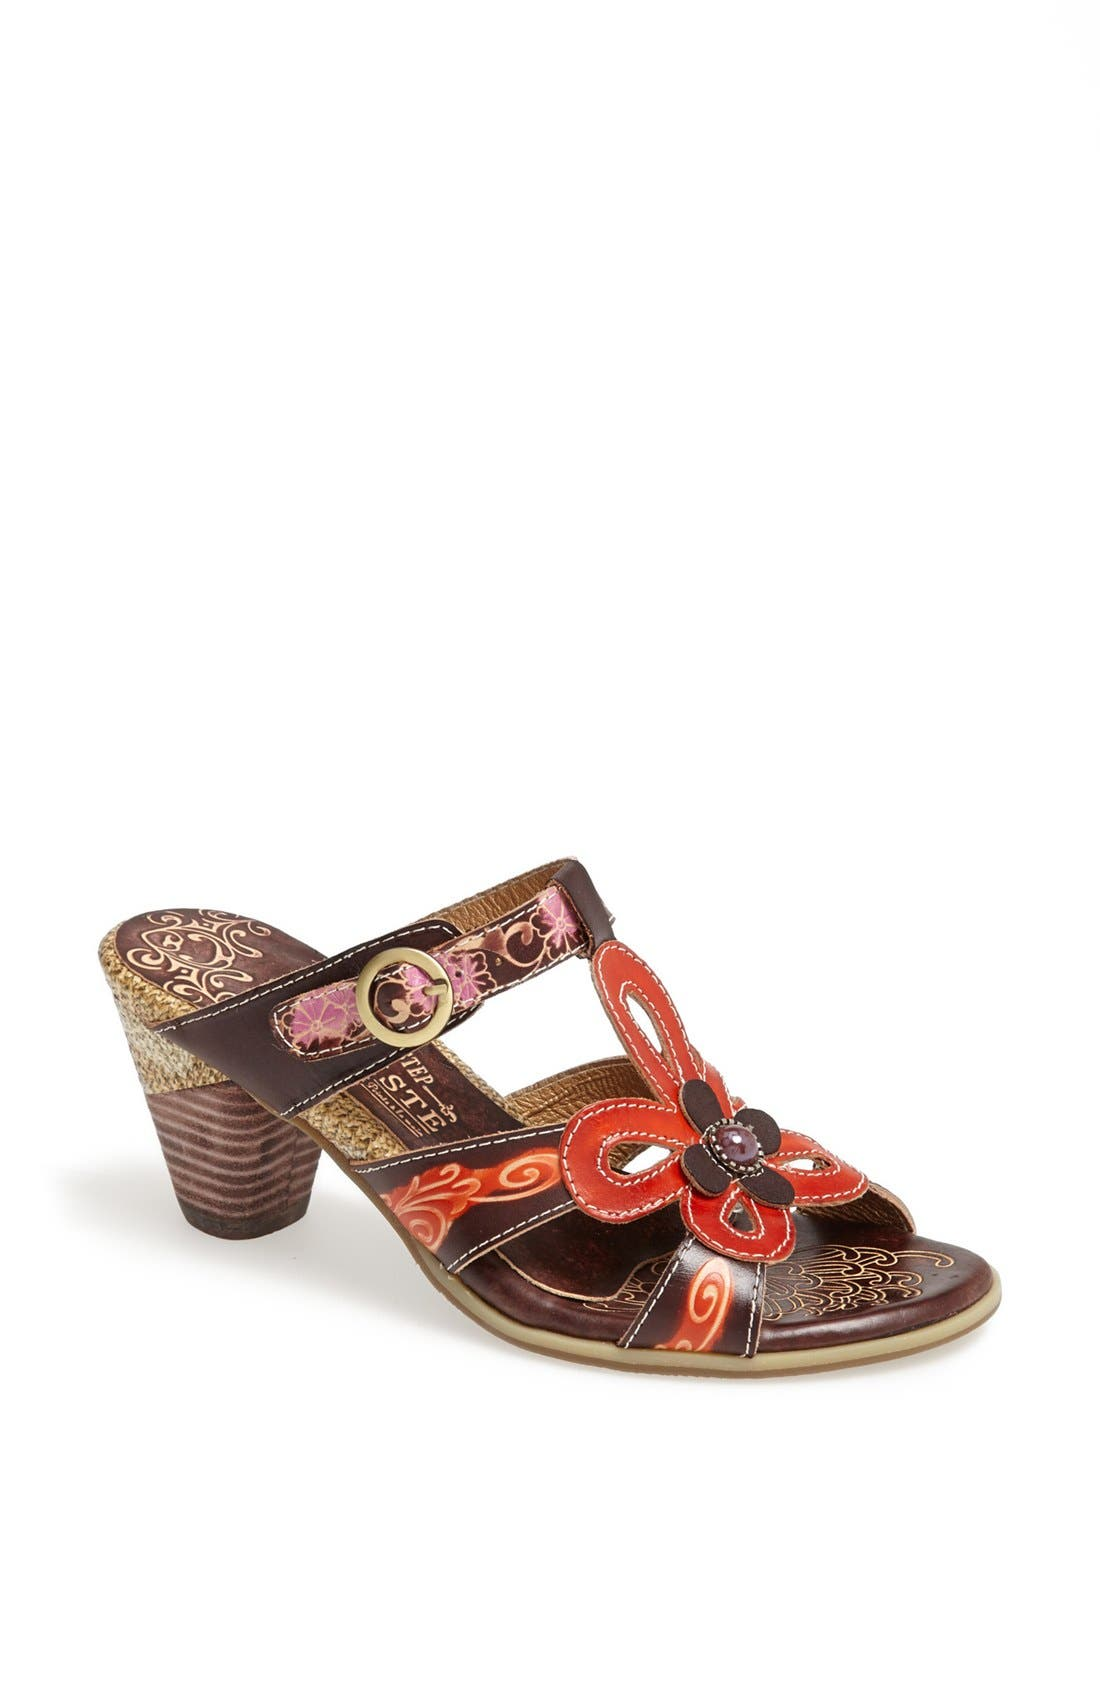 Alternate Image 1 Selected - Spring Step 'Queenie' Leather Sandal